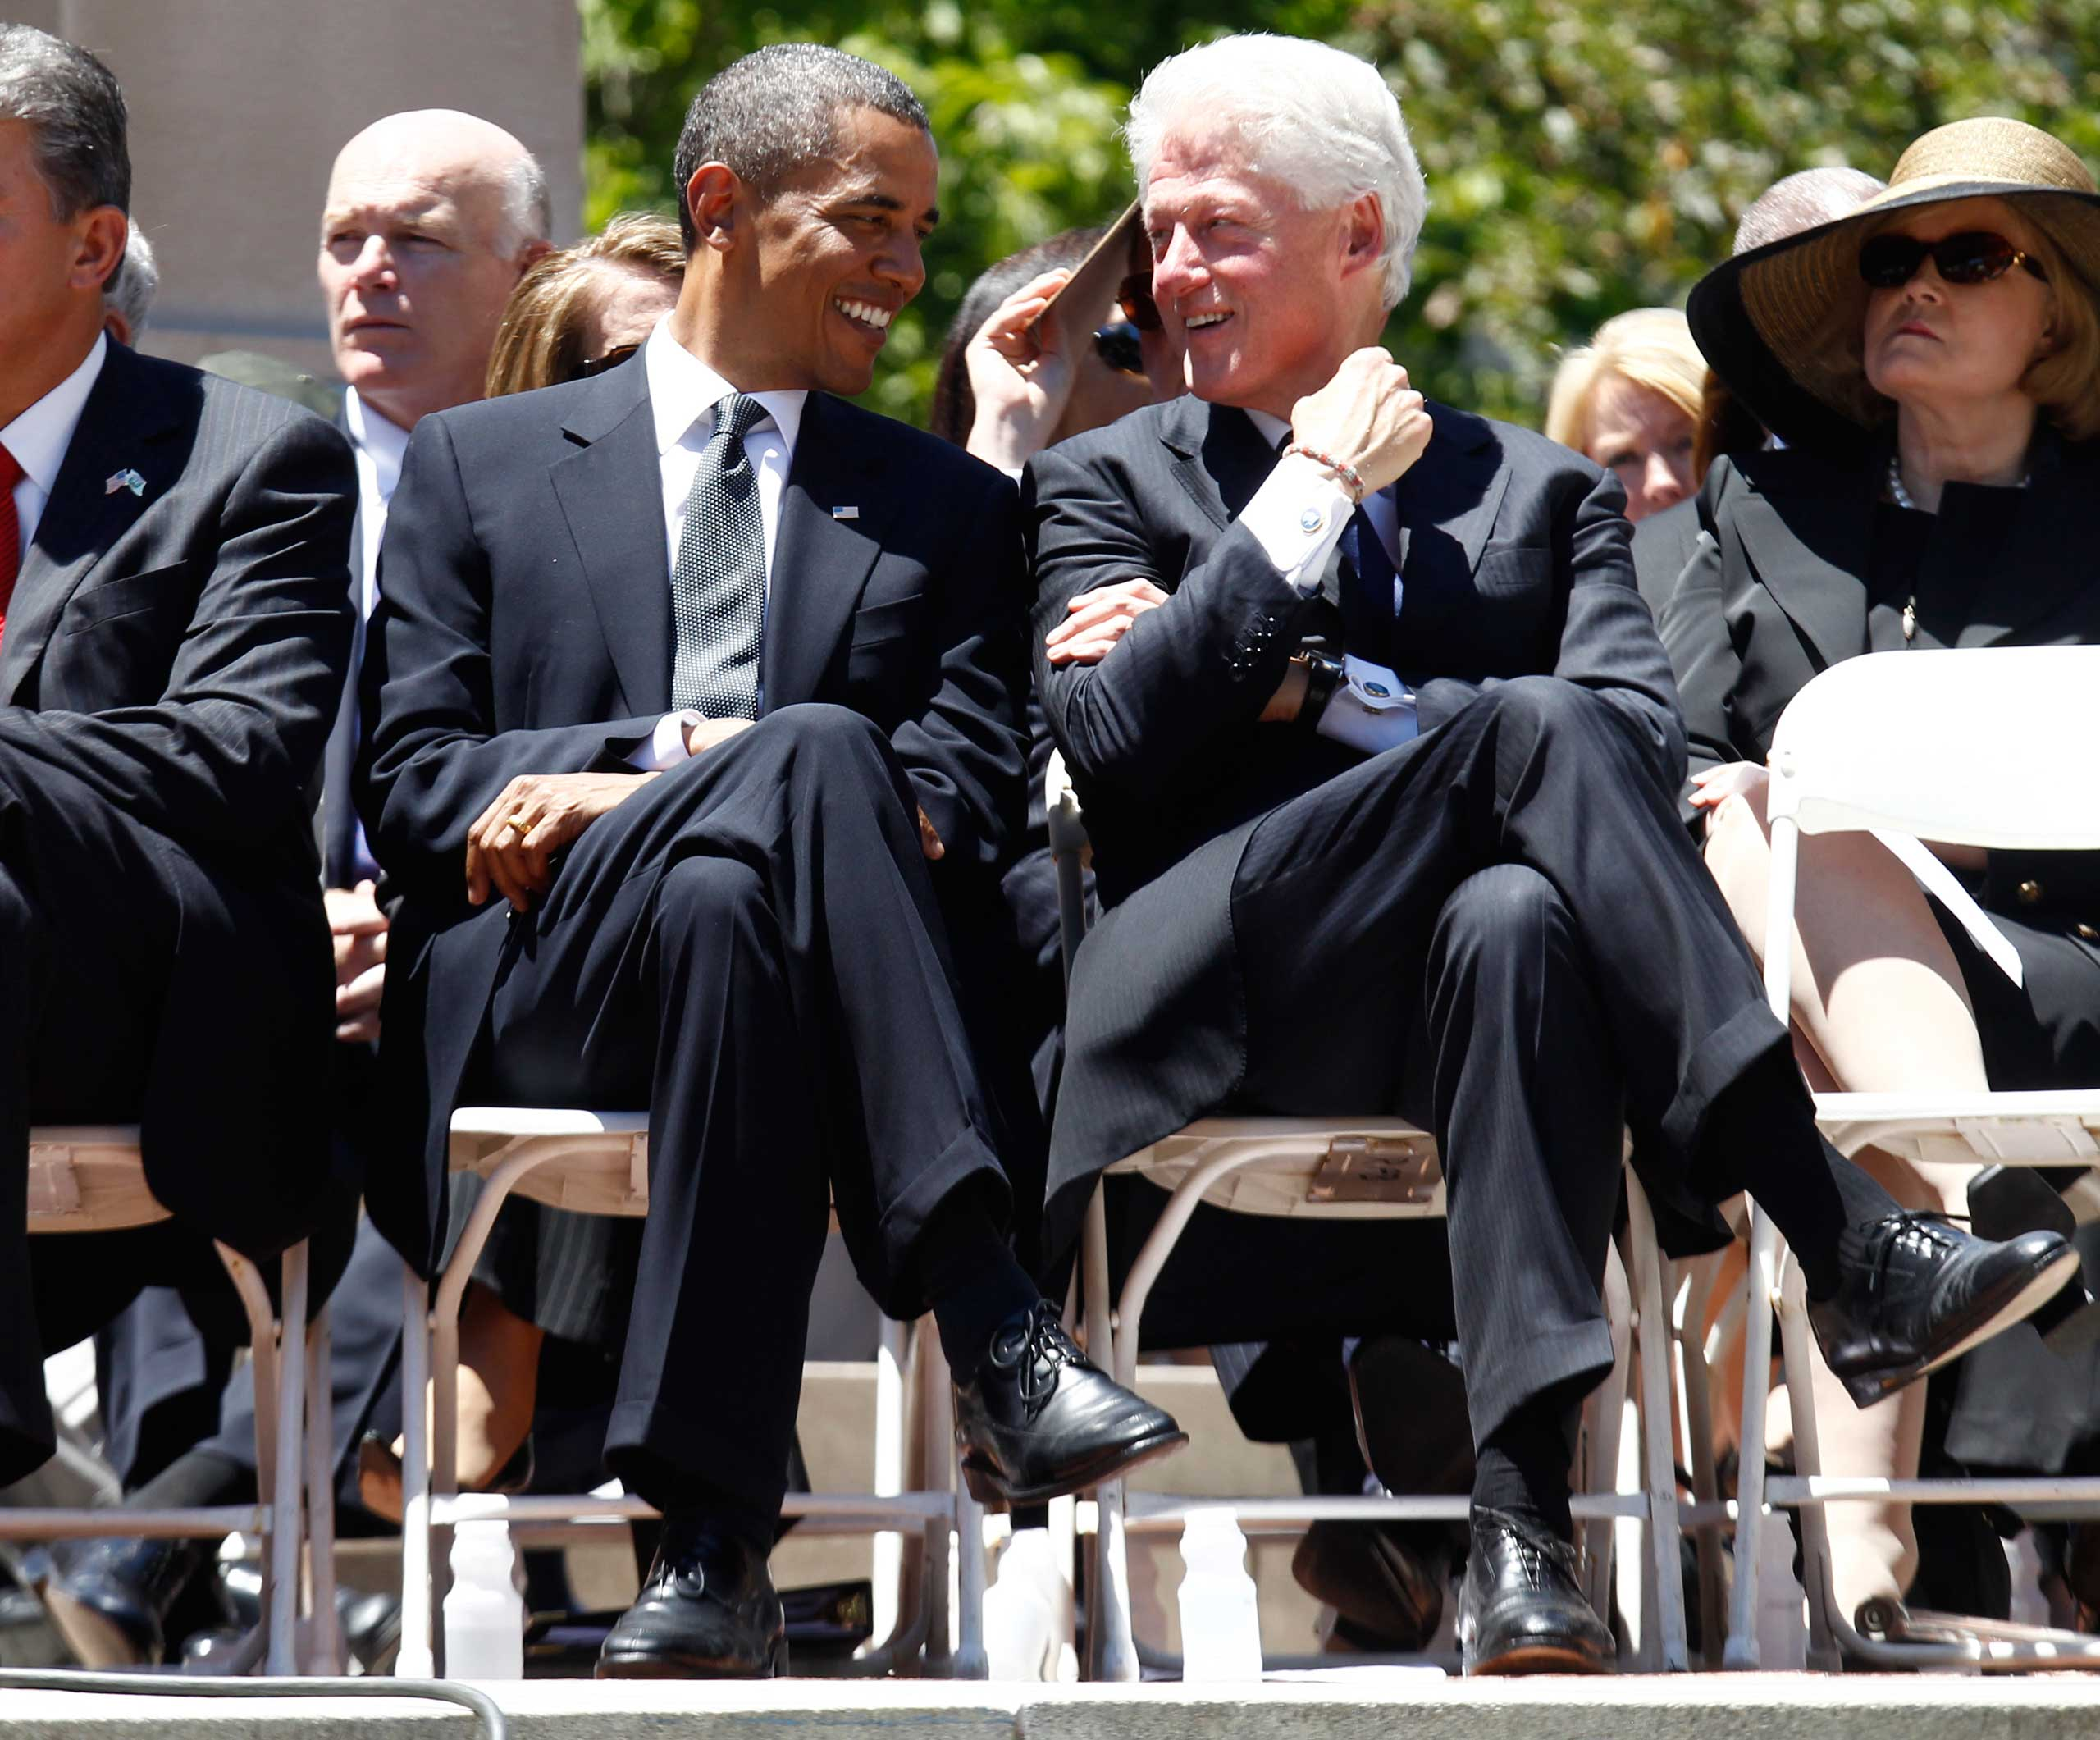 Clancy scans the crowd seated just behind Obama and former President Bill Clinton as the two talk at a memorial service for Sen. Robert Byrd on July 2, 2010, at the Capitol in Charleston, WV.